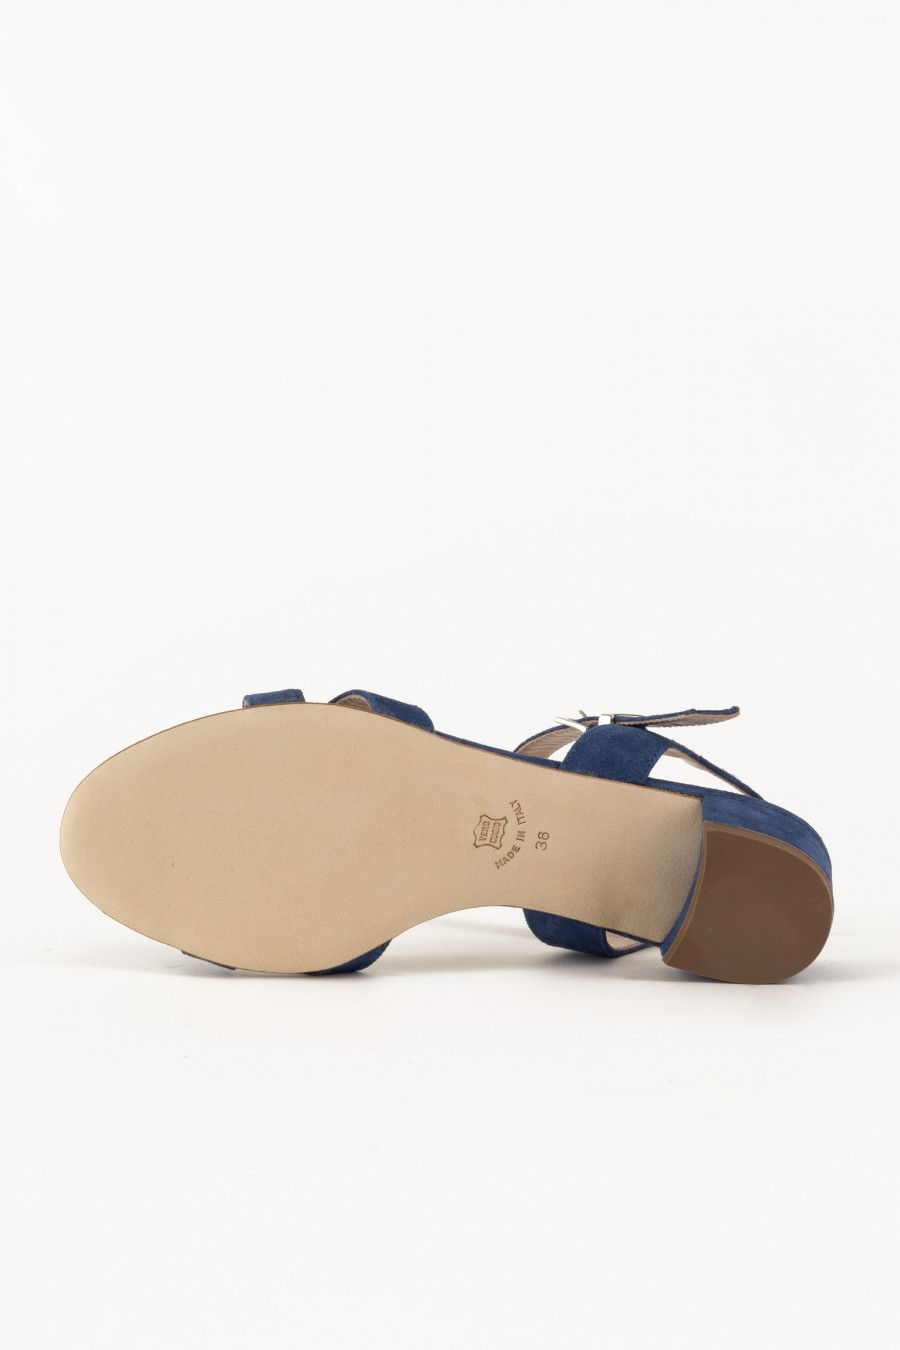 Genuine leather sandals with lists